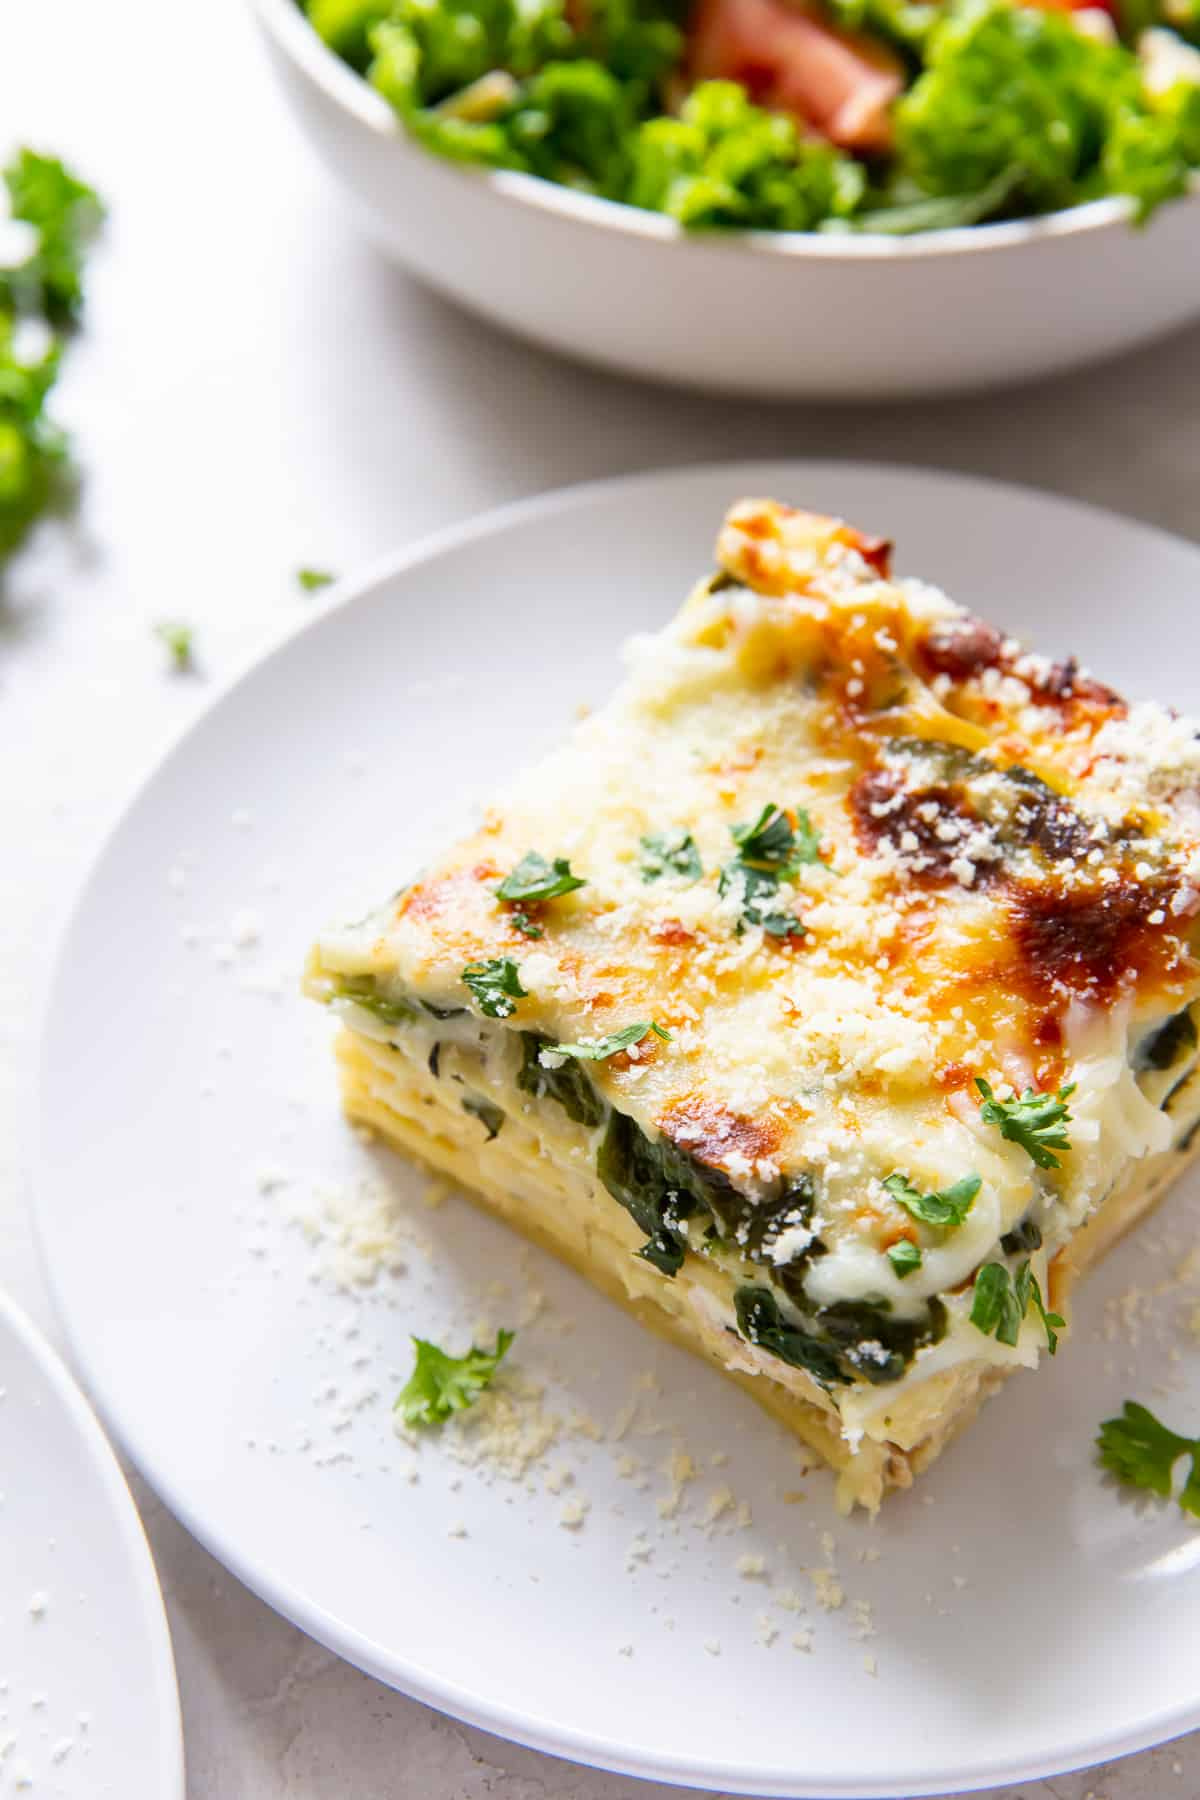 A slice on lasagna on a white plate in front of a bowl of salad.